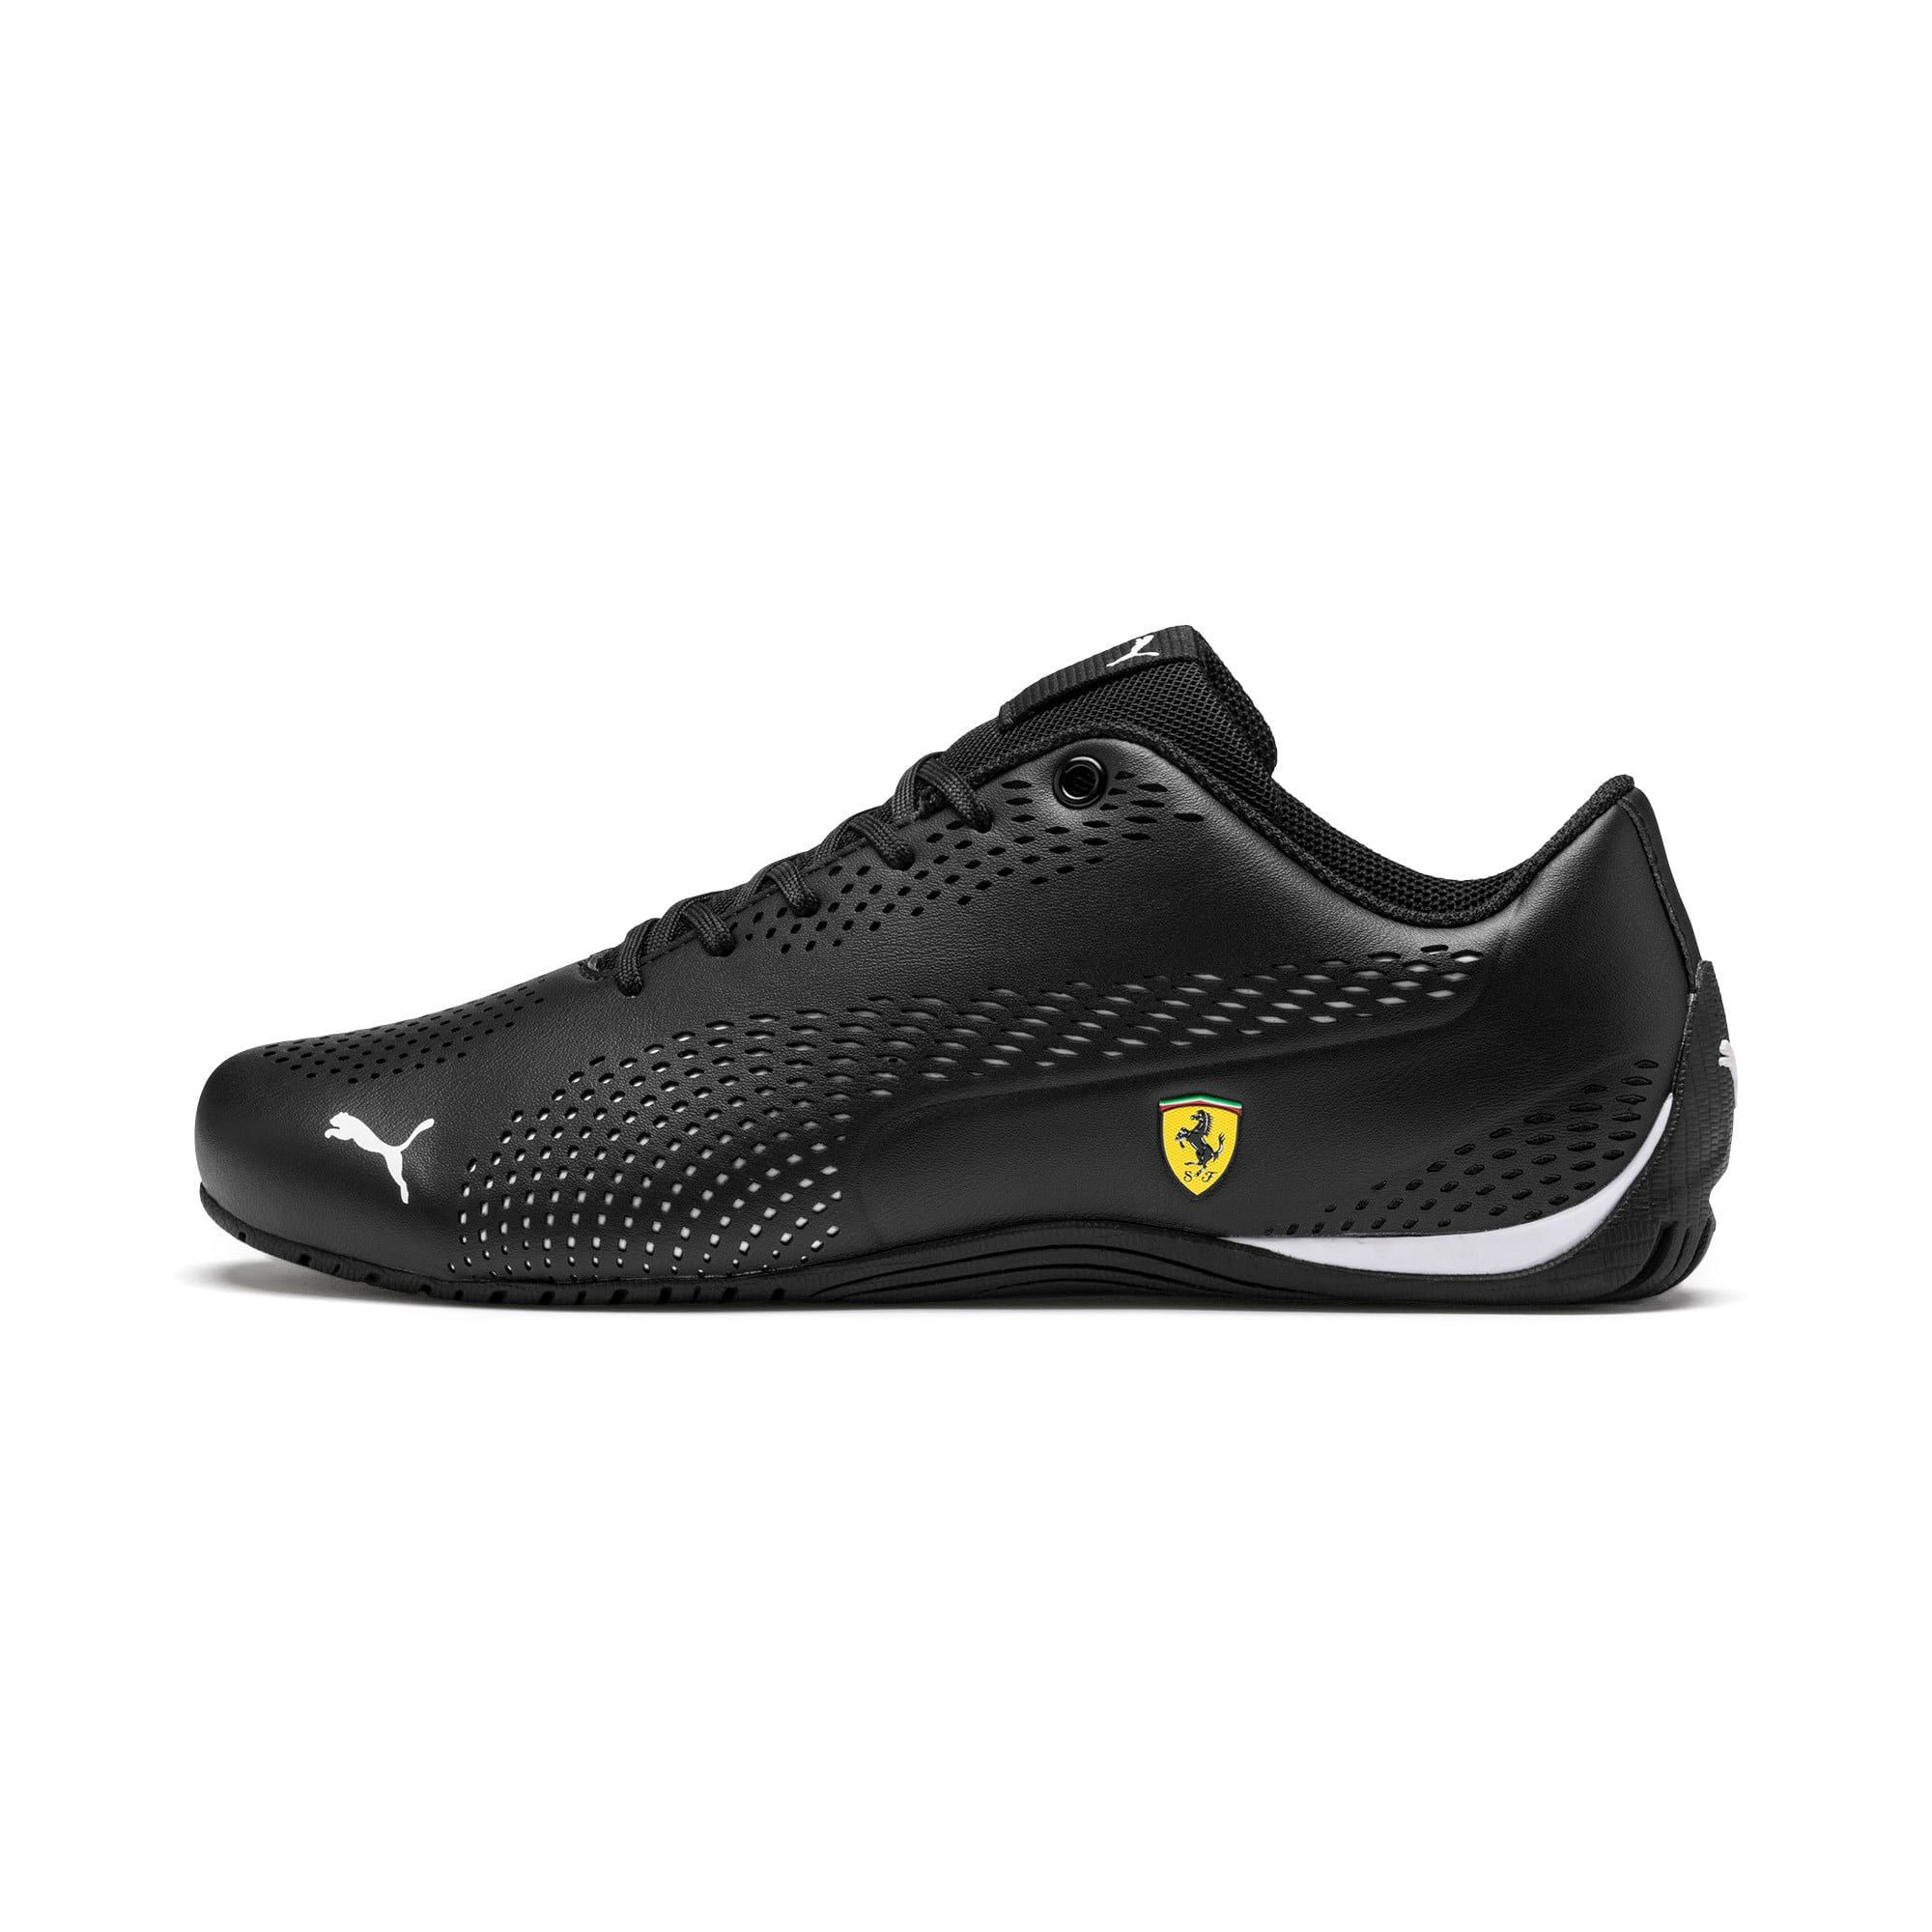 Ferrari Drift Cat 5 Ultra II Trainers | Puma Black-Puma White | PUMA Motorsport | PUMA United Kingdom